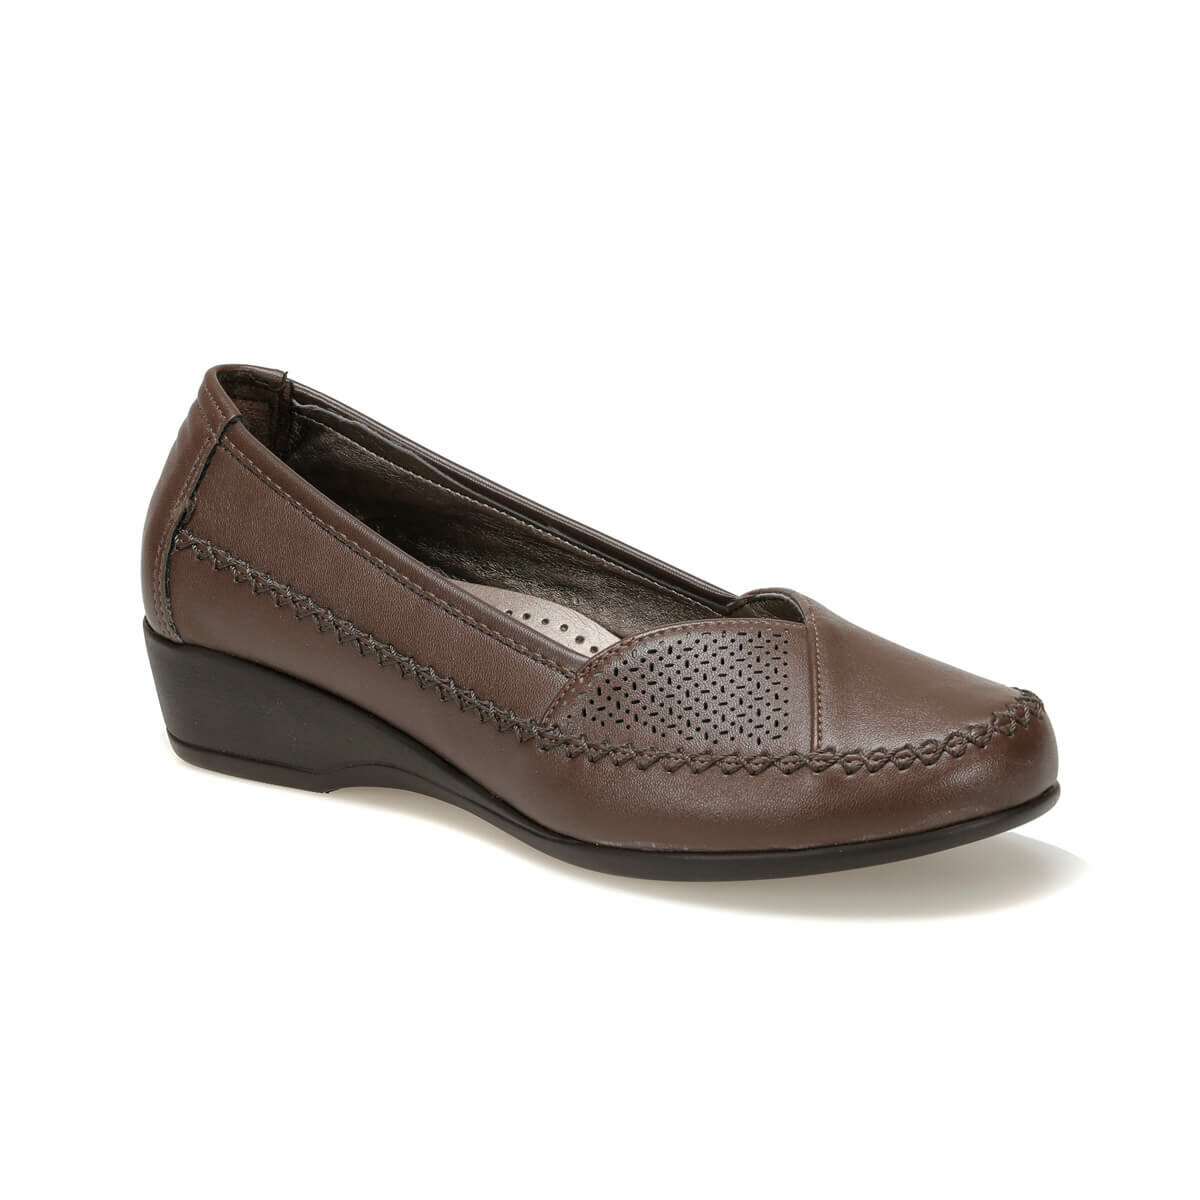 FLO 81. 157280.Z Brown Women 'S Classic Shoes Polaris